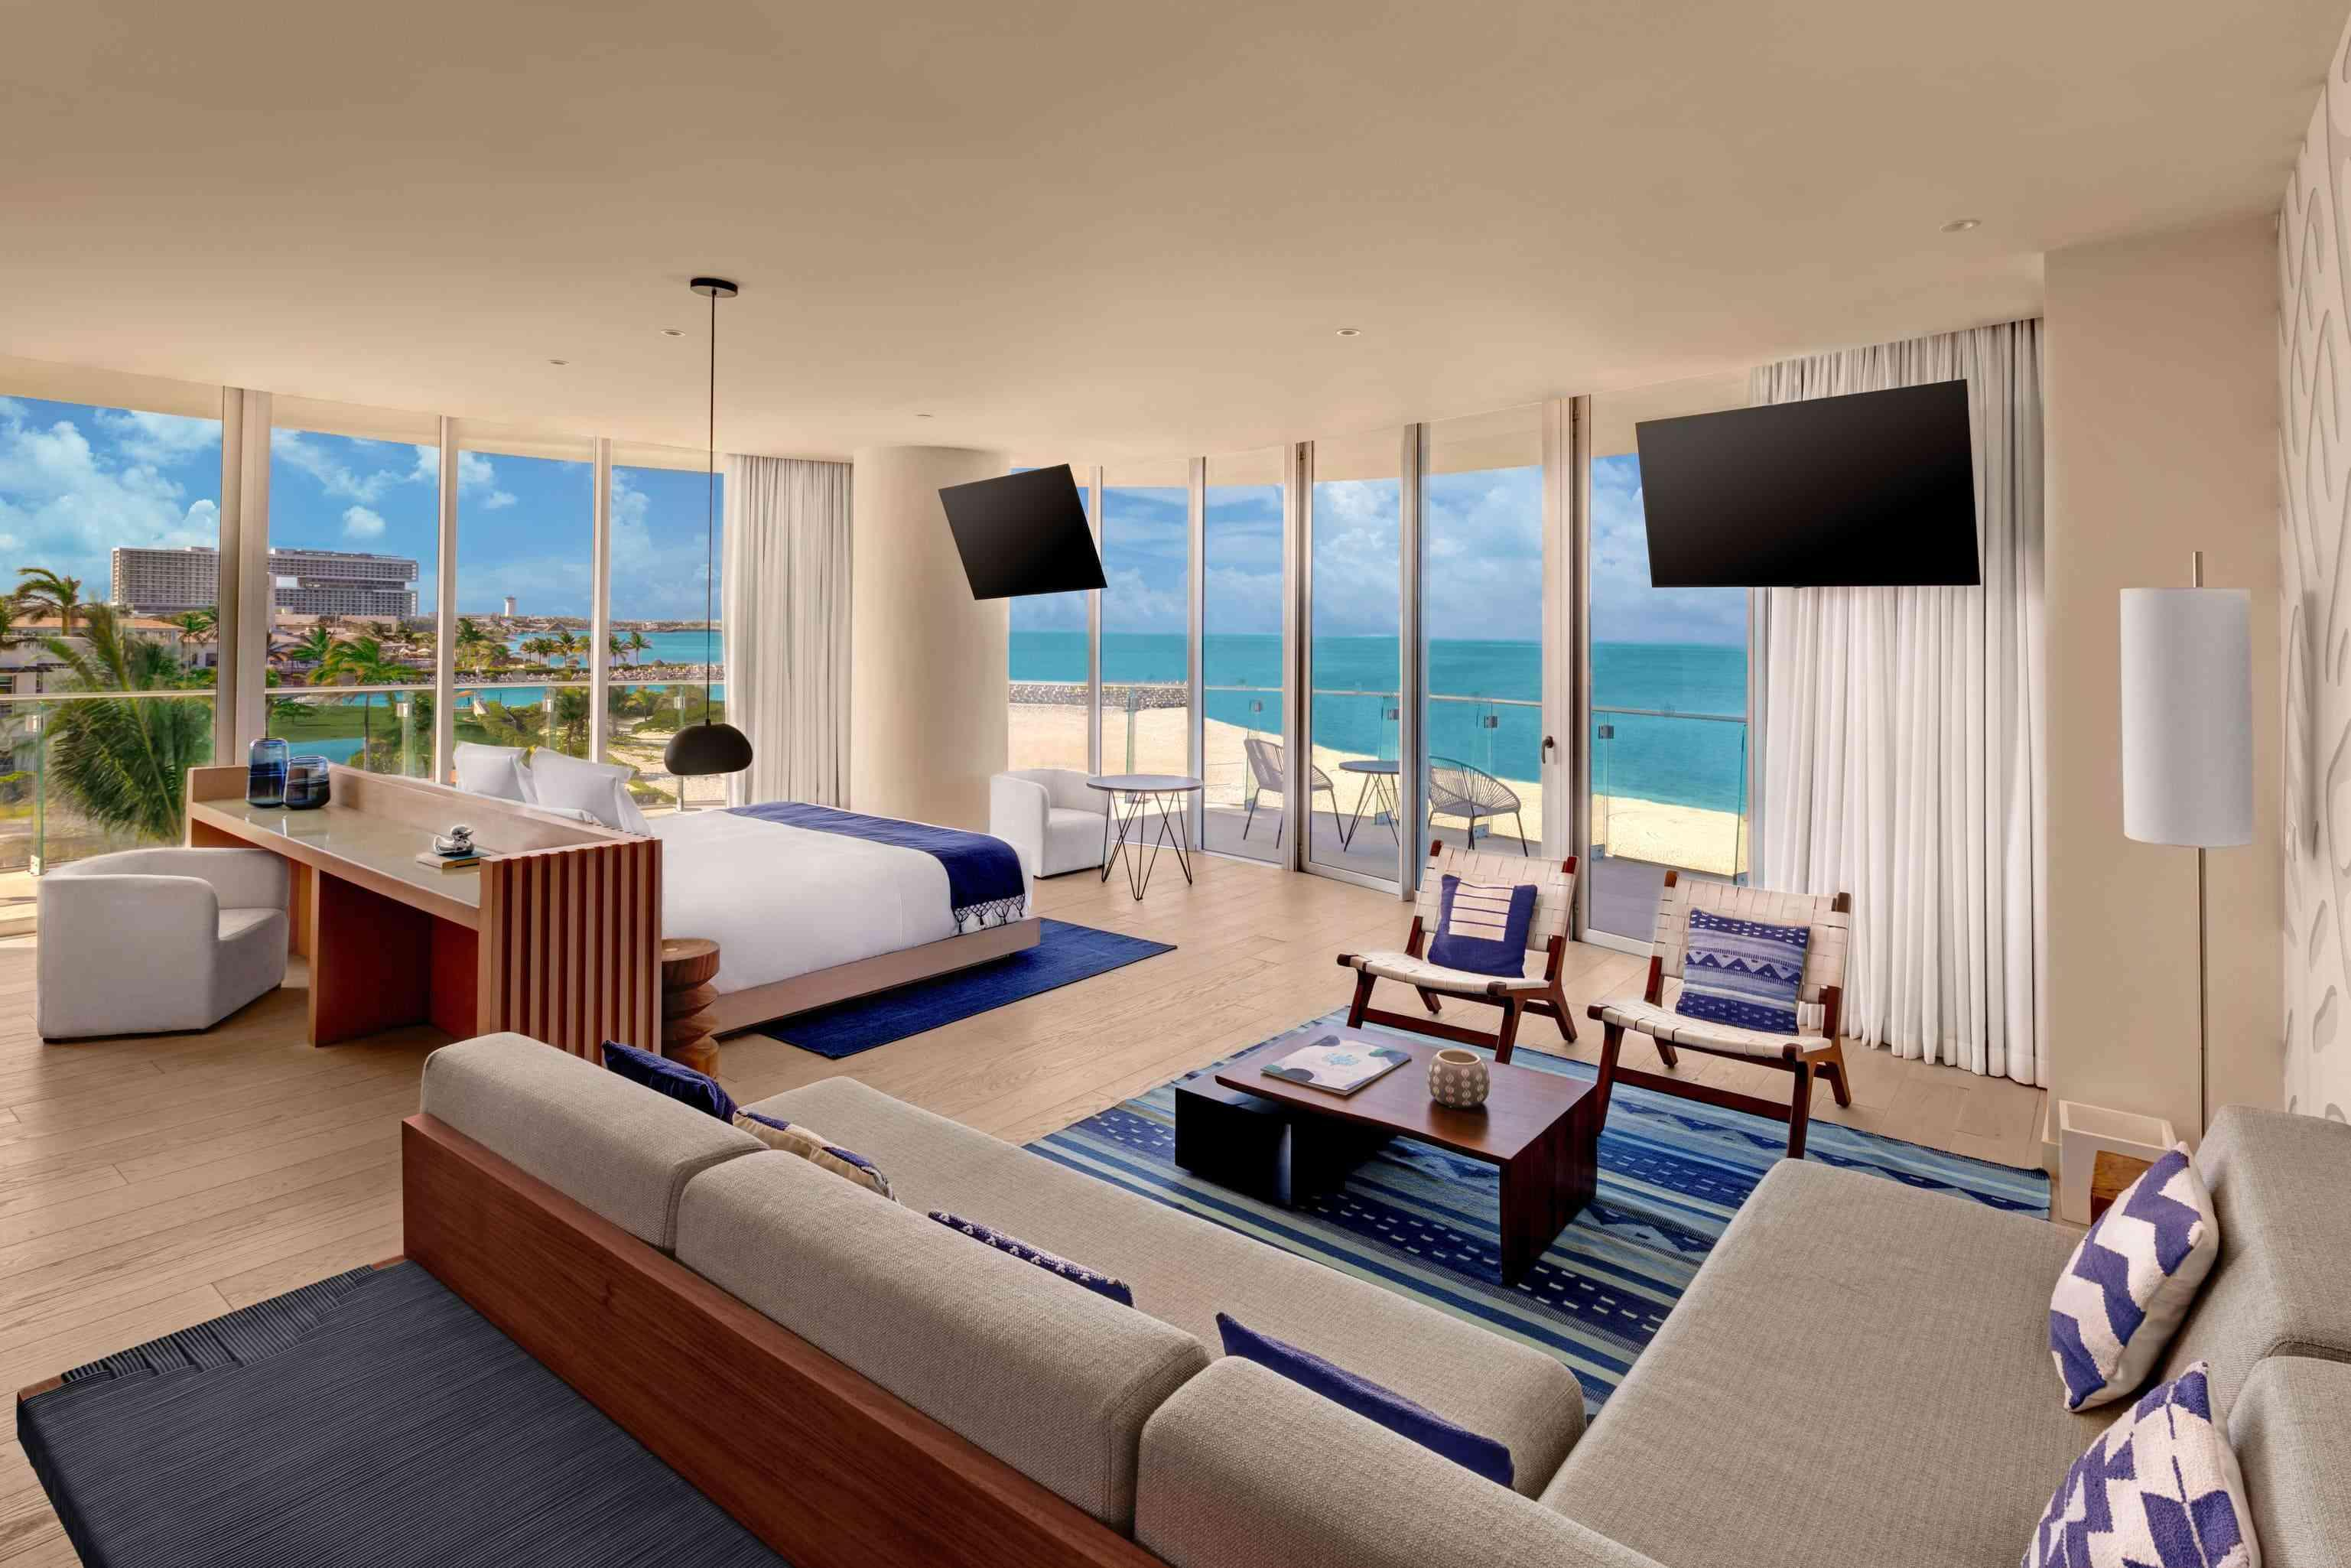 Wide shot of the Premier Ocean Front One Bedroom Suite that includes a desk, a large seating area, 2 televisions, a bed, and a balcony with a view of the ocean